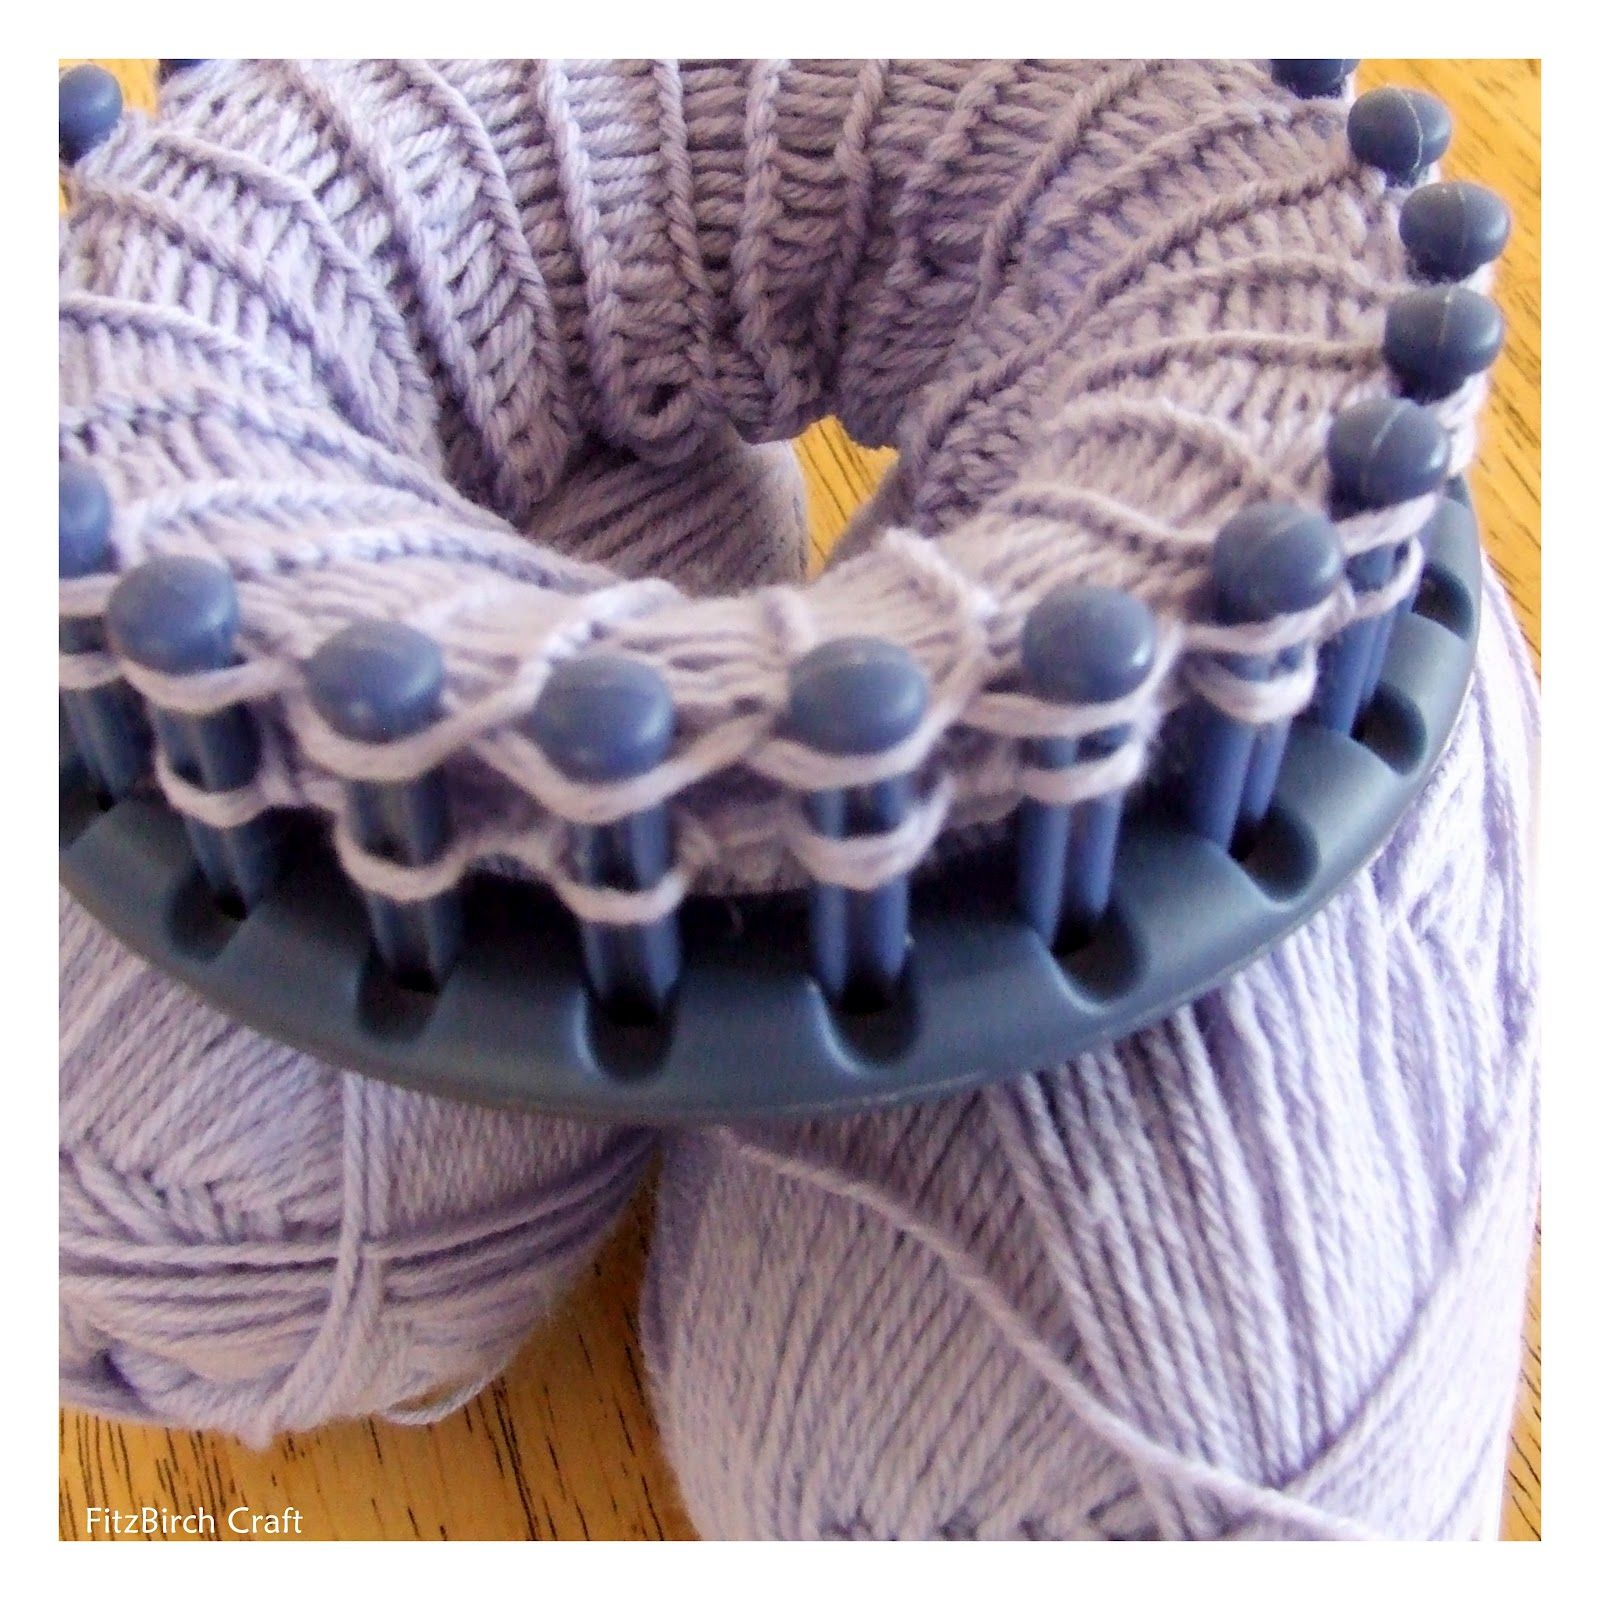 Up until now, I have only used the straight loom knitter for a ...